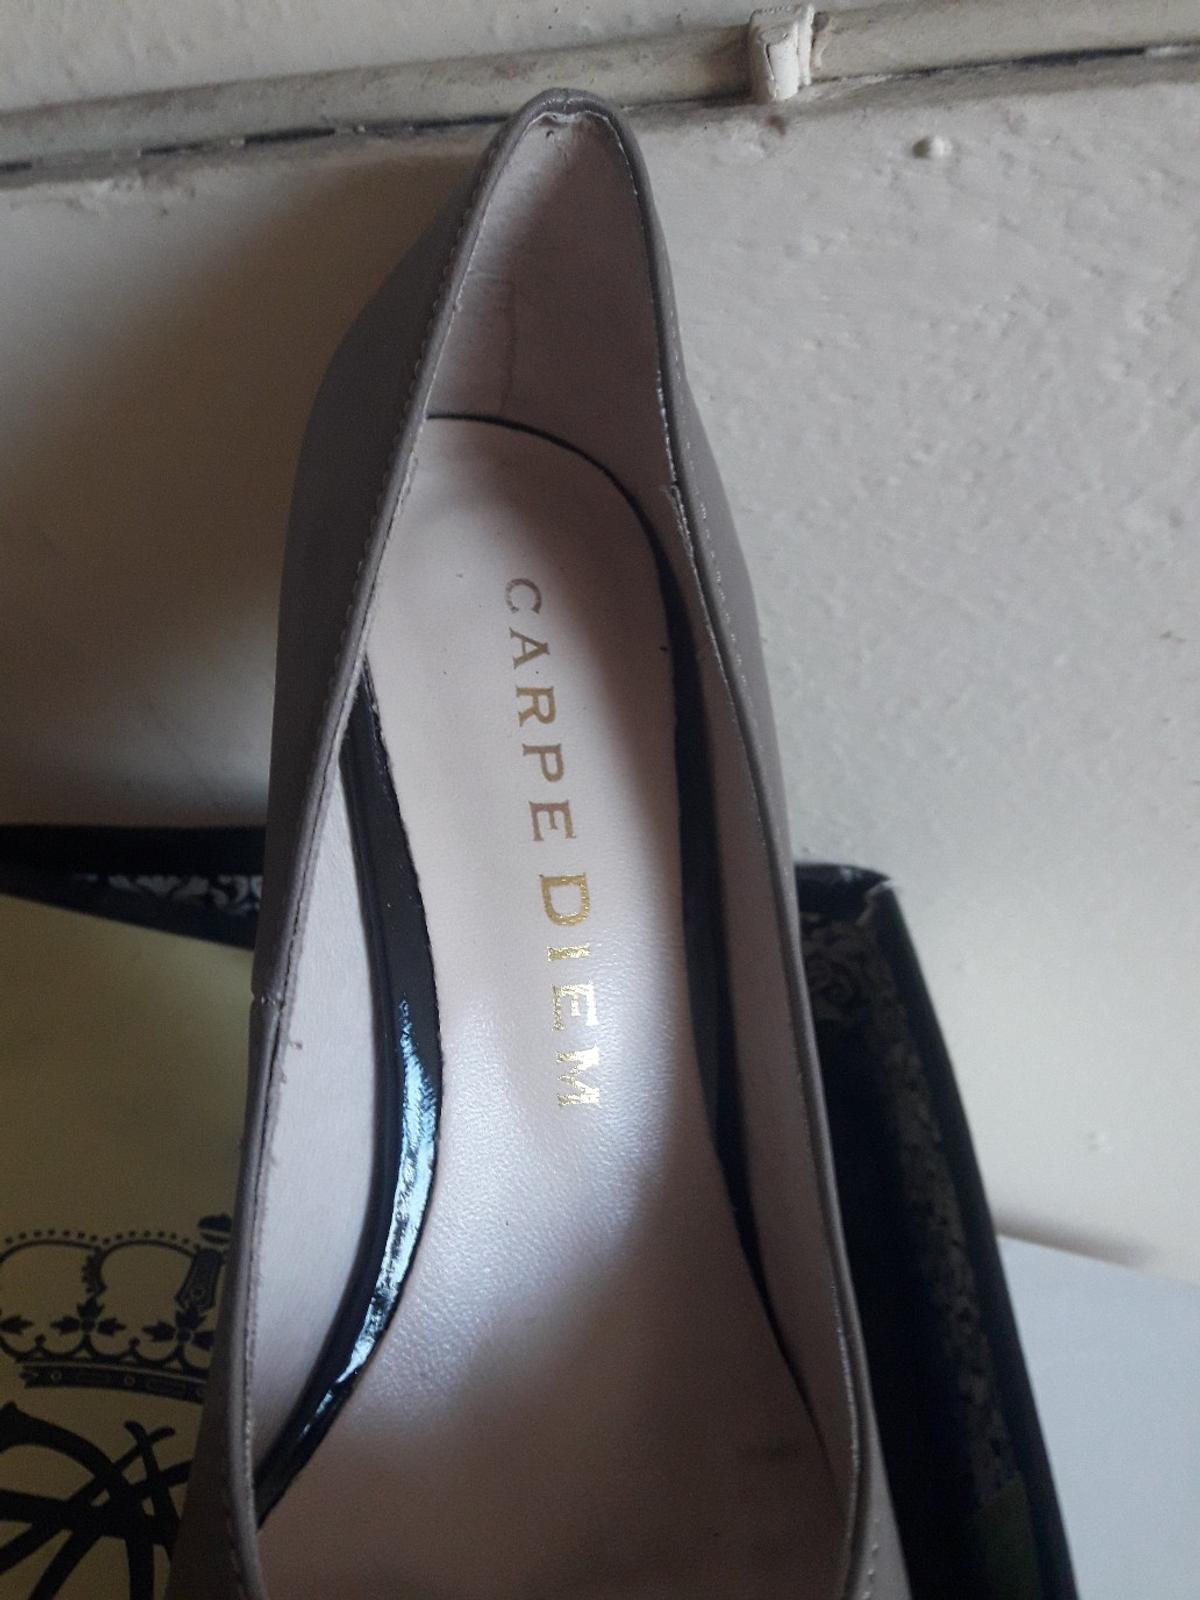 best authentic 346d2 0aaee scarpe in 80057 Sant'Antonio Abate for €10.00 for sale - Shpock